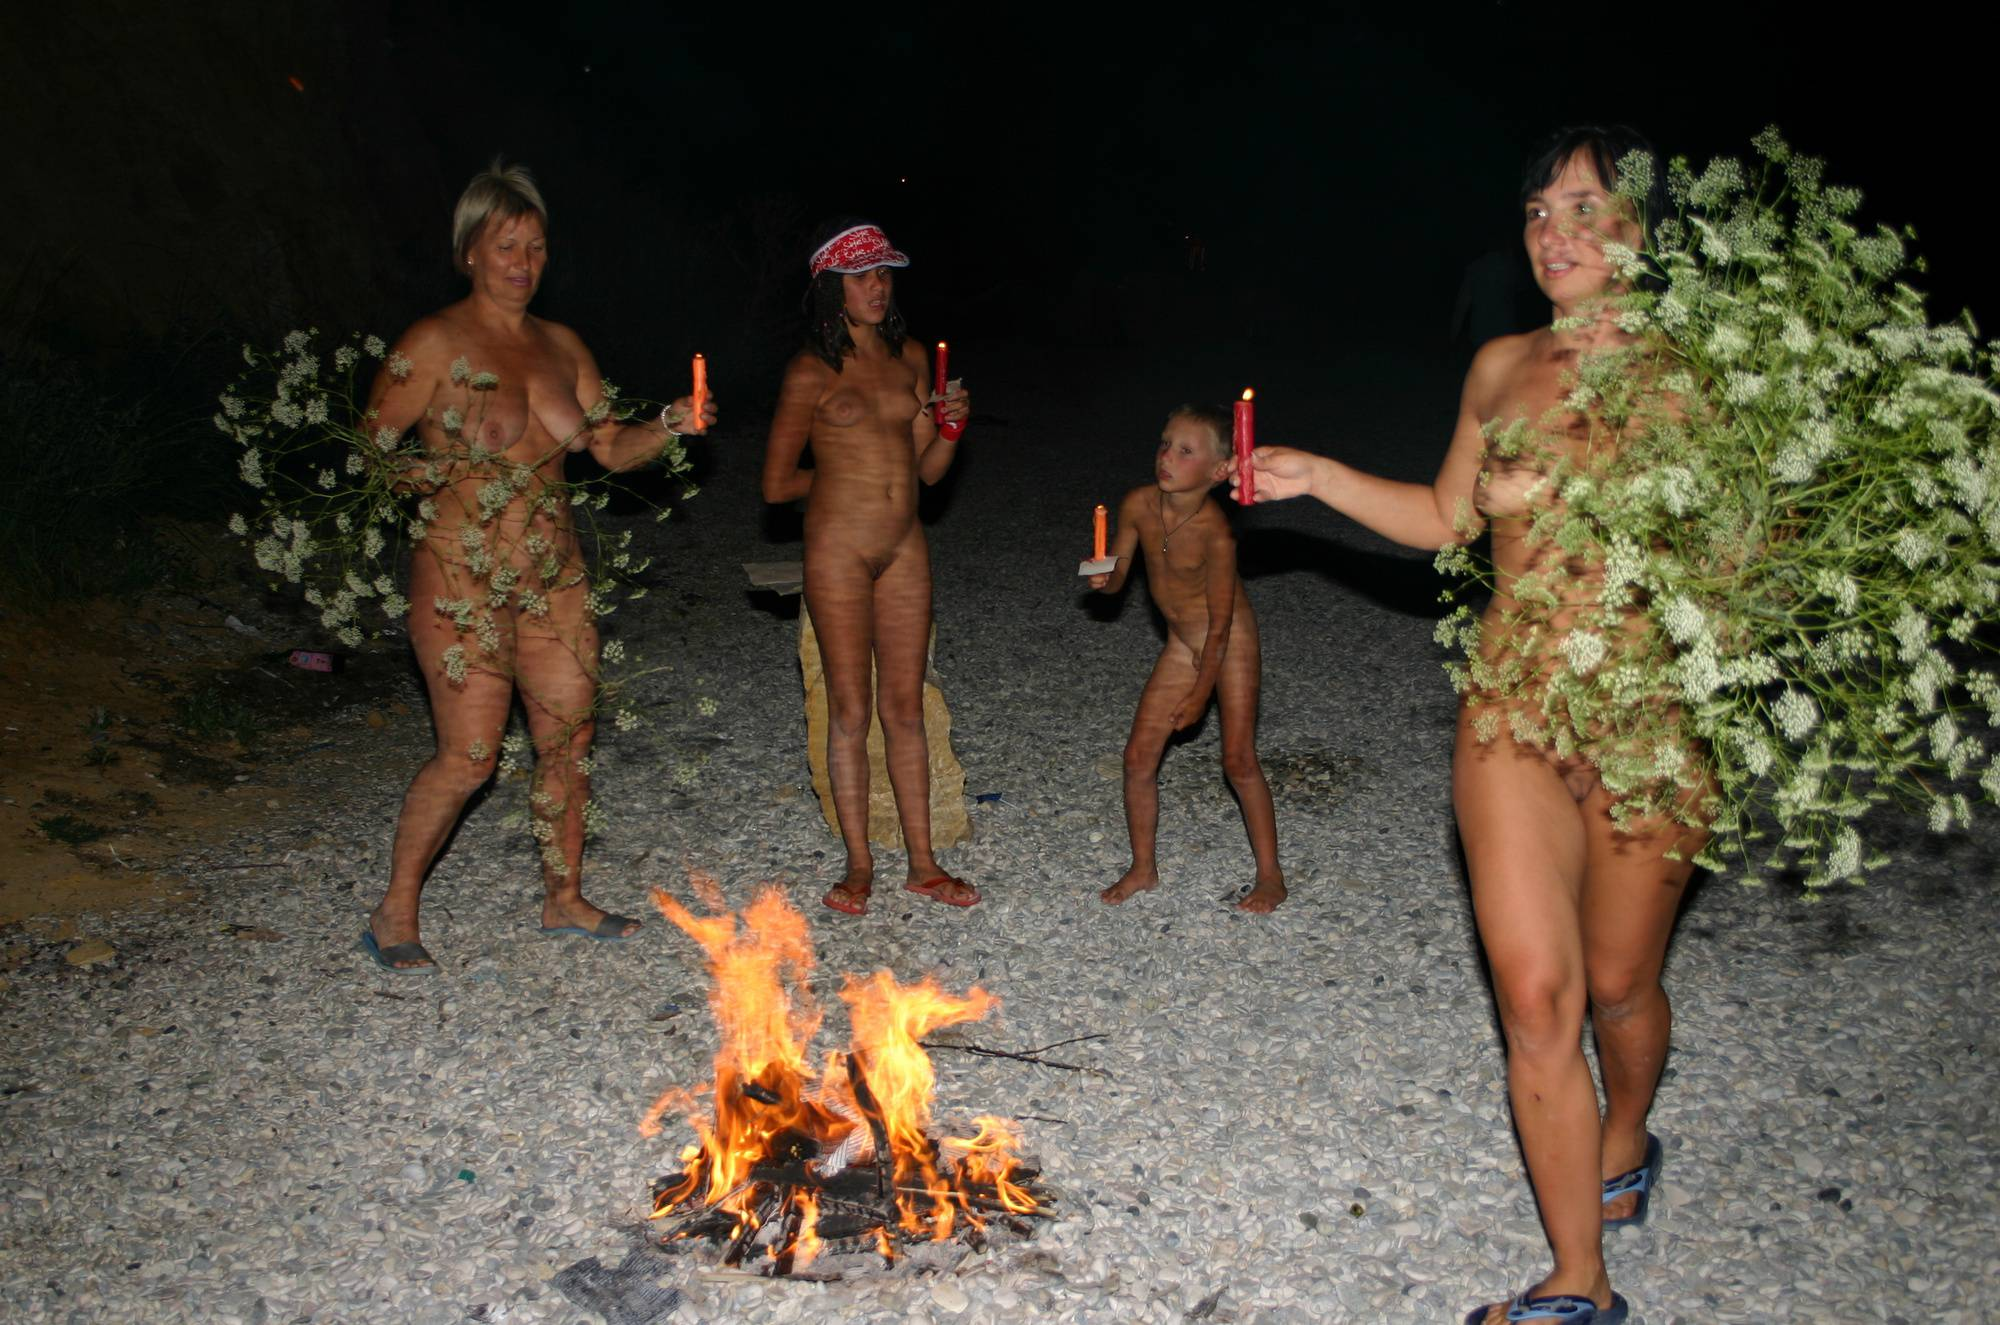 Nudist Gallery Fire and Bow Night Dancing - 2